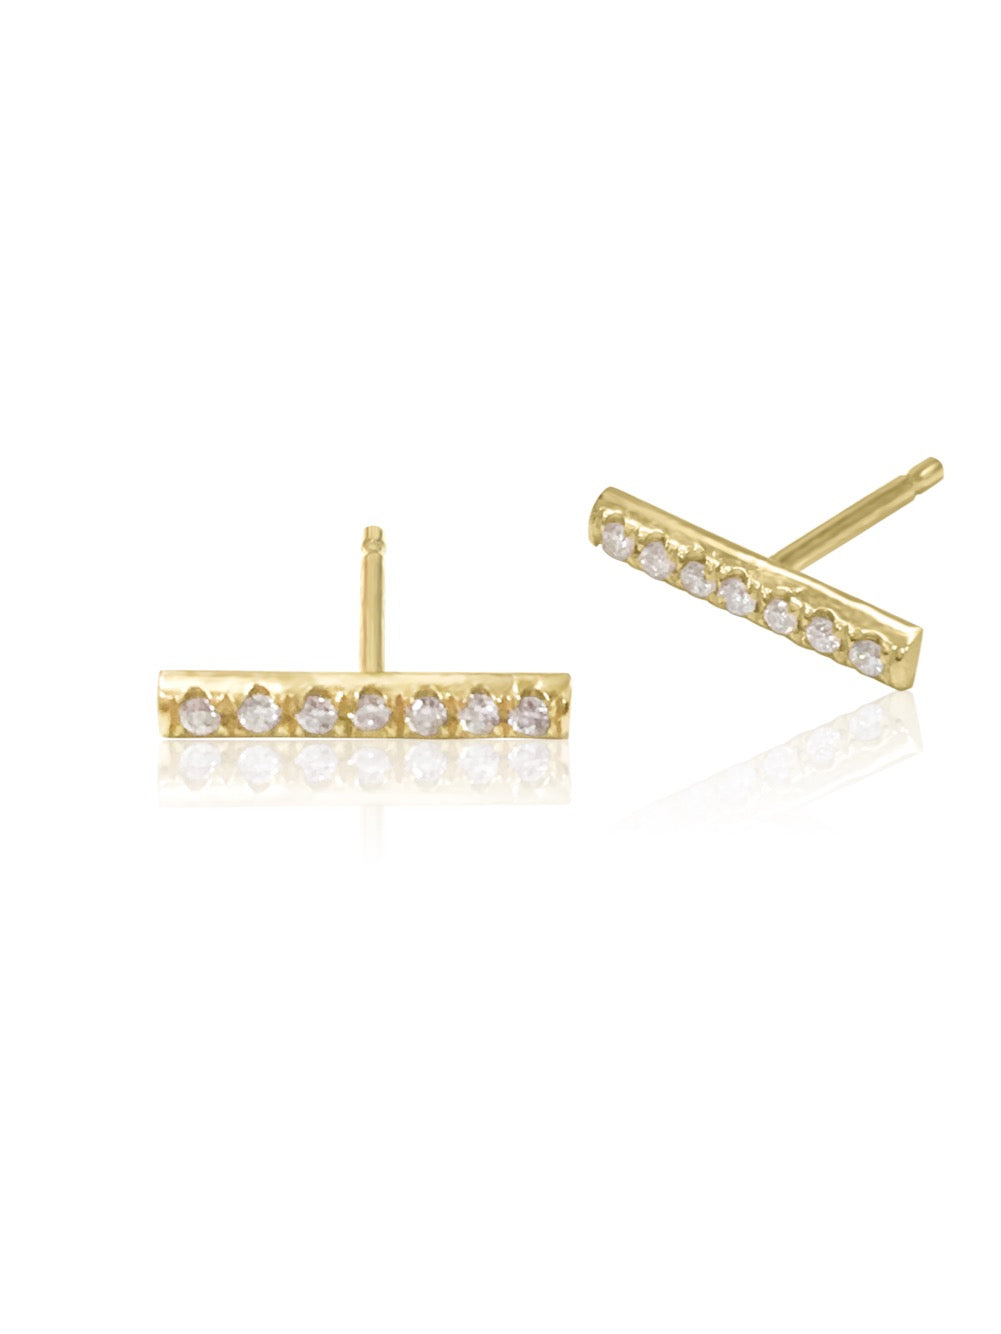 14K Micro pave Diamond Bar Earrings